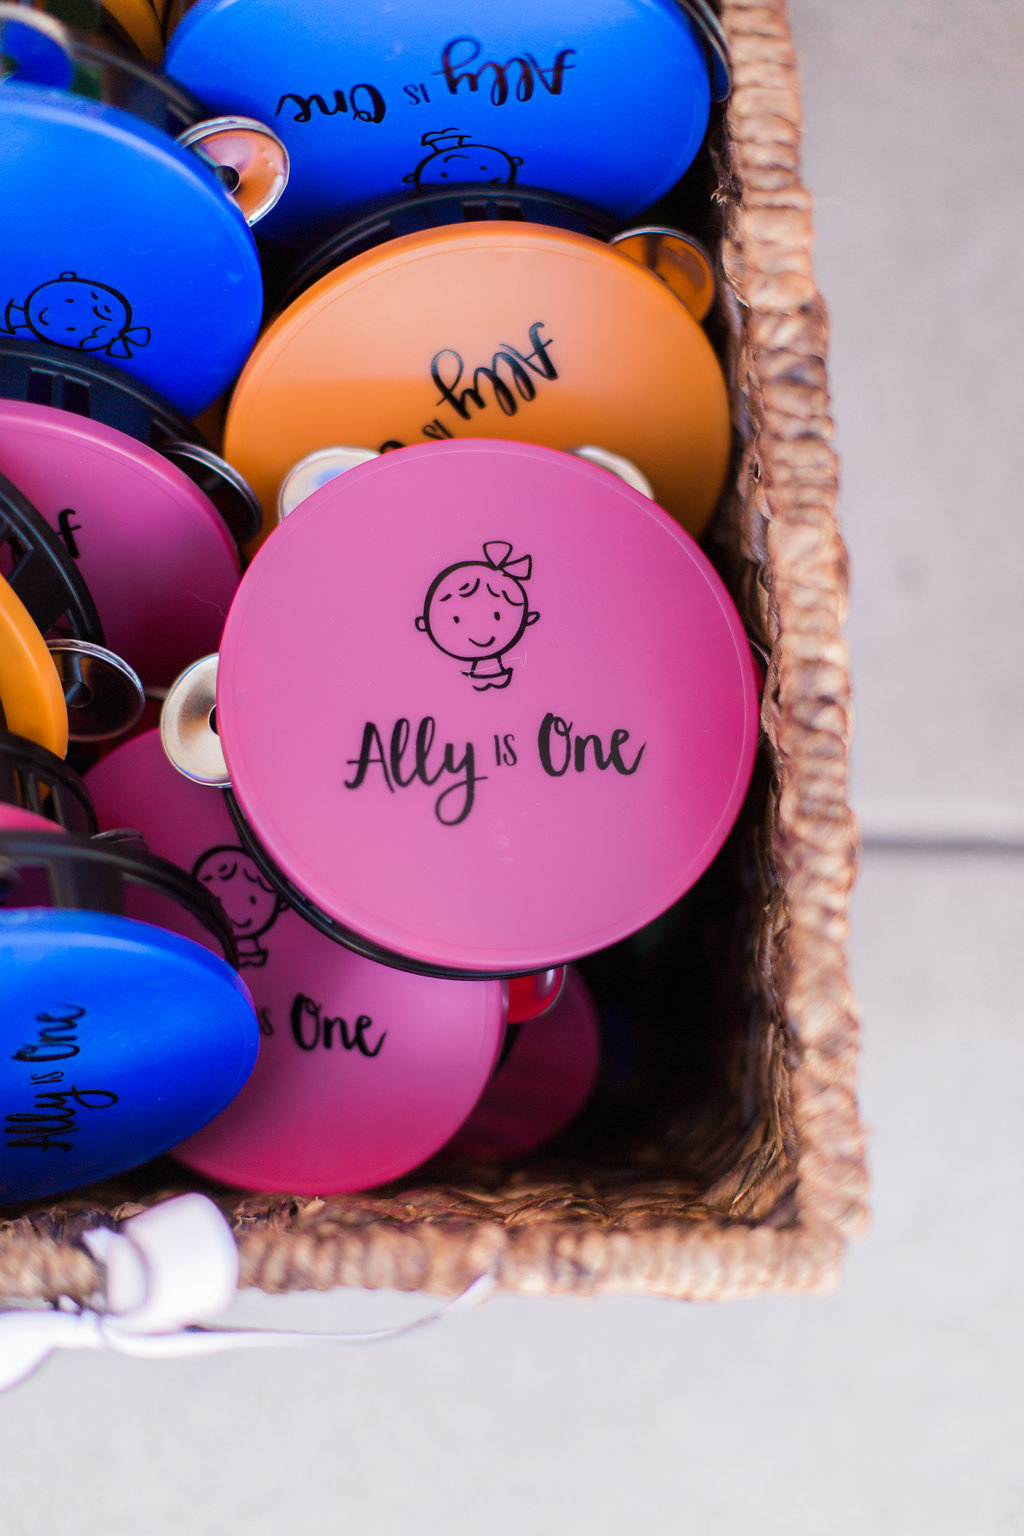 Bright, personalized tambourines served as party favors. Adorable!